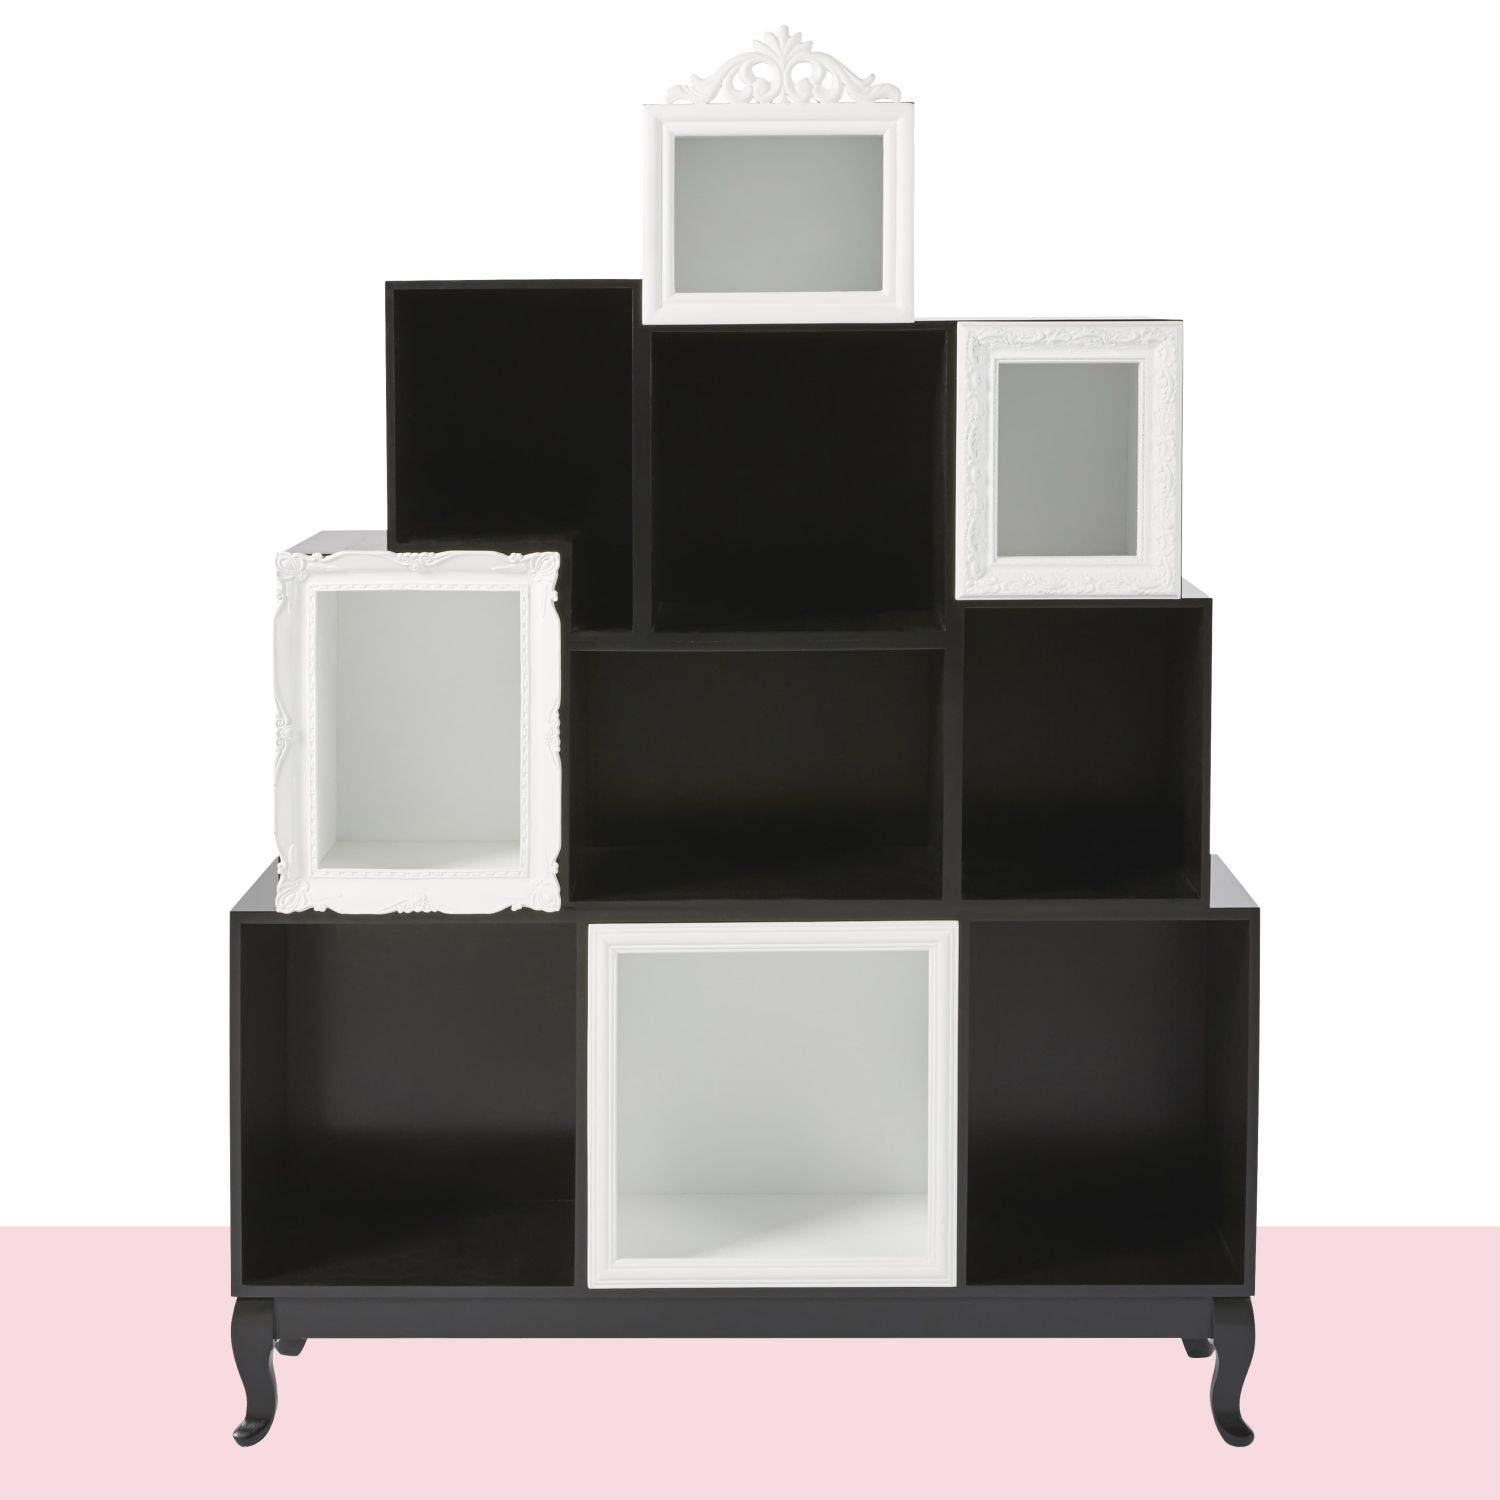 cabinet de rangement d structur noir et blanc maisons du monde. Black Bedroom Furniture Sets. Home Design Ideas